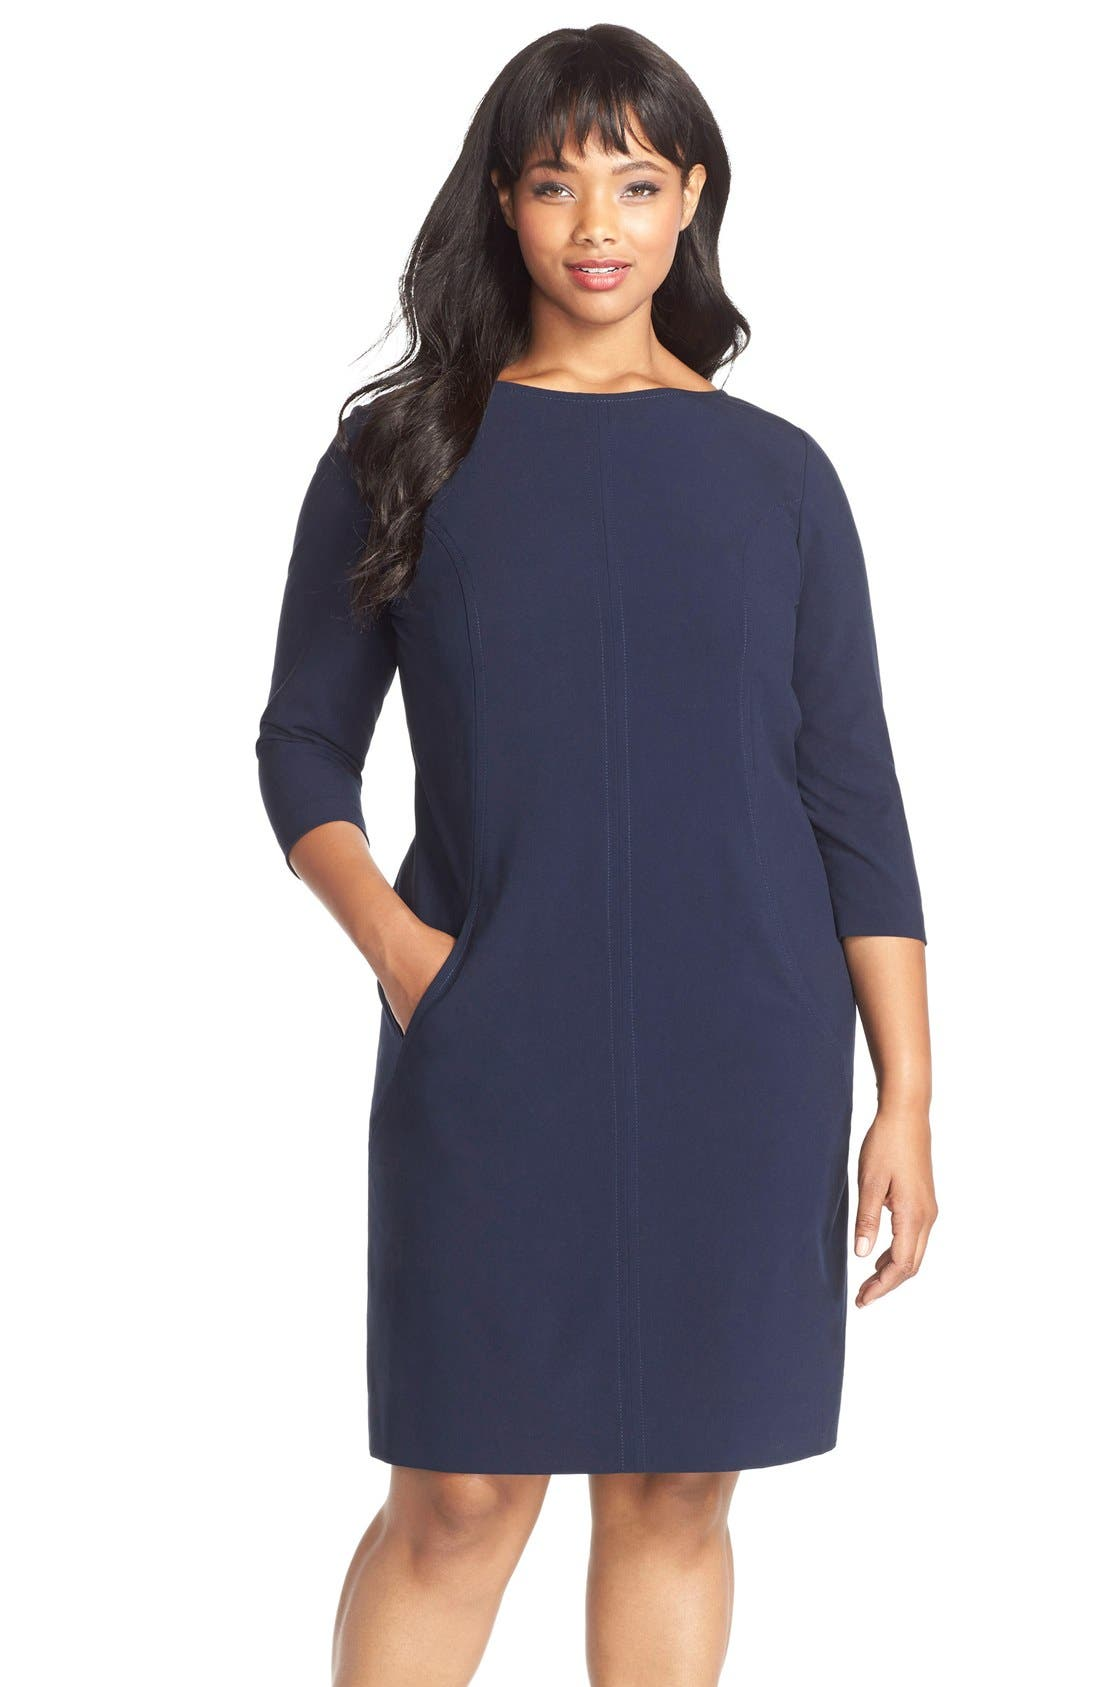 Main Image - Tahari by Arthur S. Levine Seamed A-Line Dress (Plus Size)